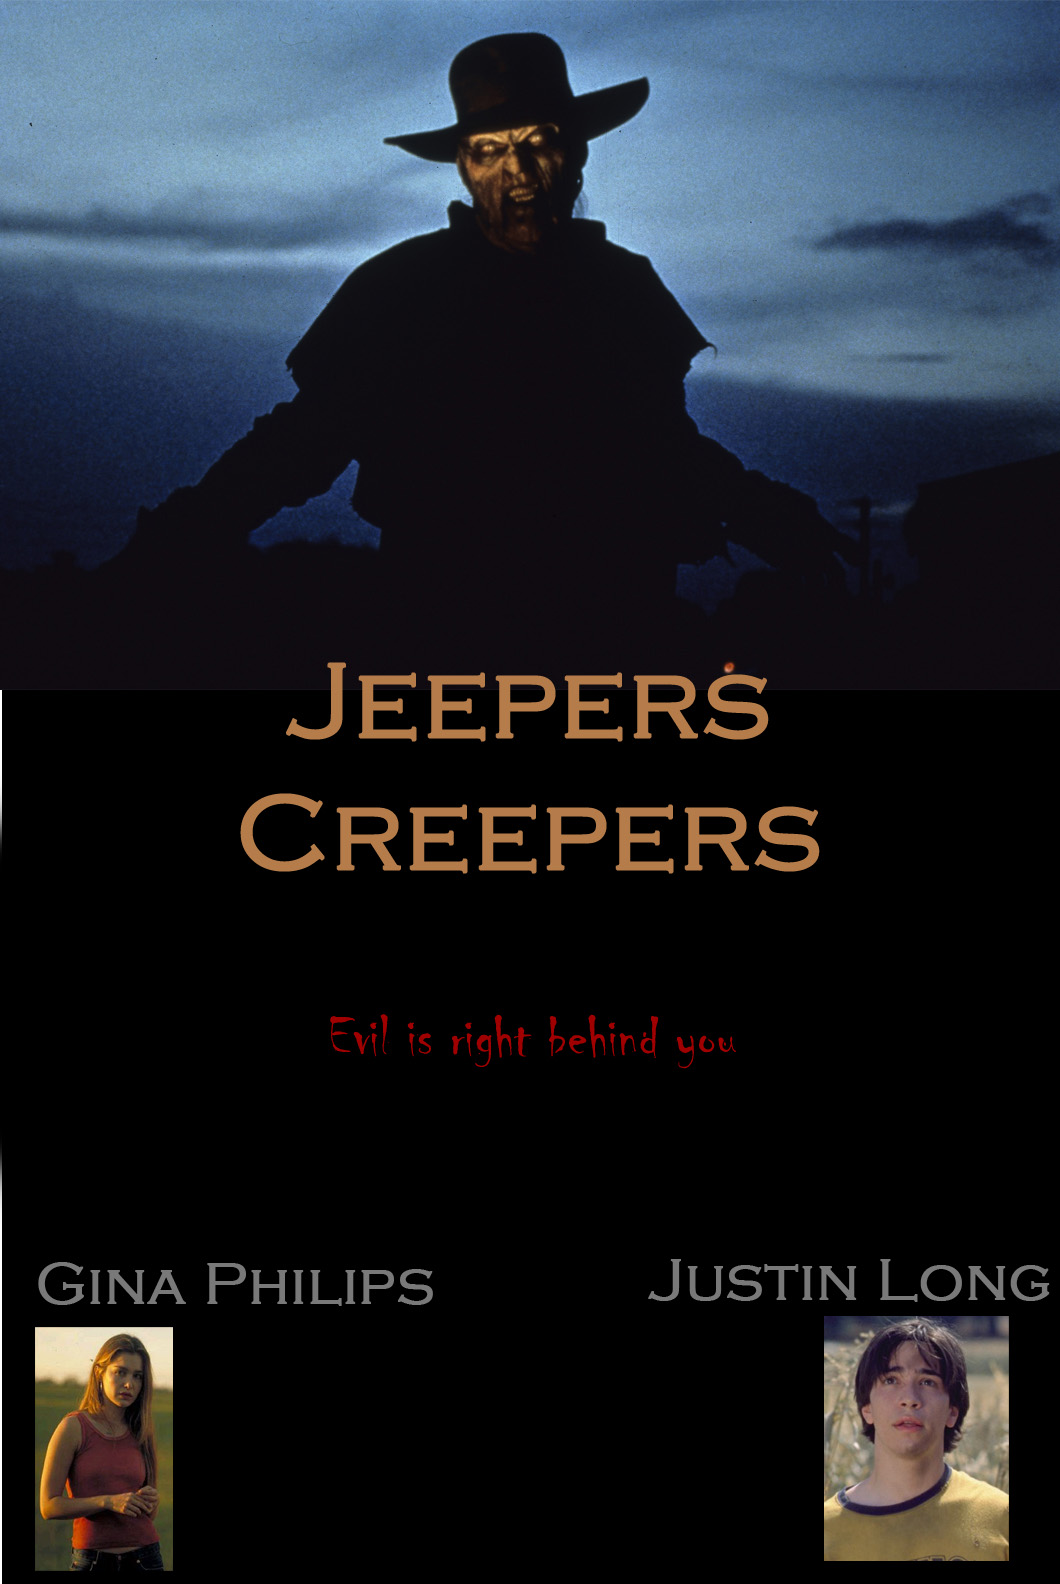 jeepers creepers 3 movie download in 300mb